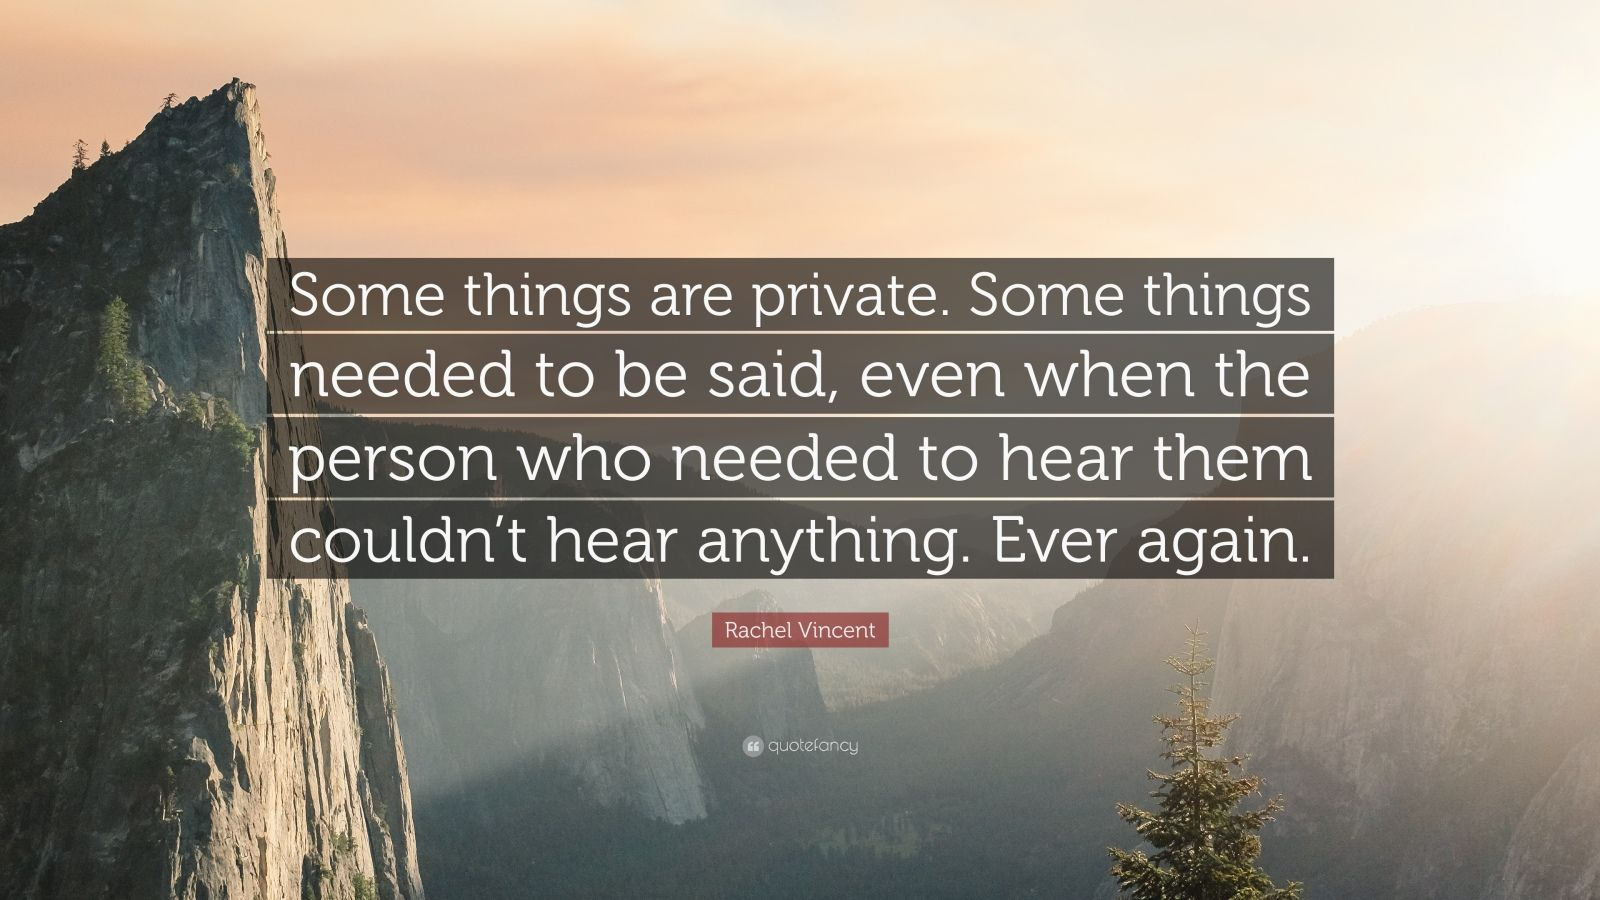 """Rachel Vincent Quote: """"Some things are private. Some things needed to be said, even when the person who needed to hear them couldn't hear anything. Ever again."""""""